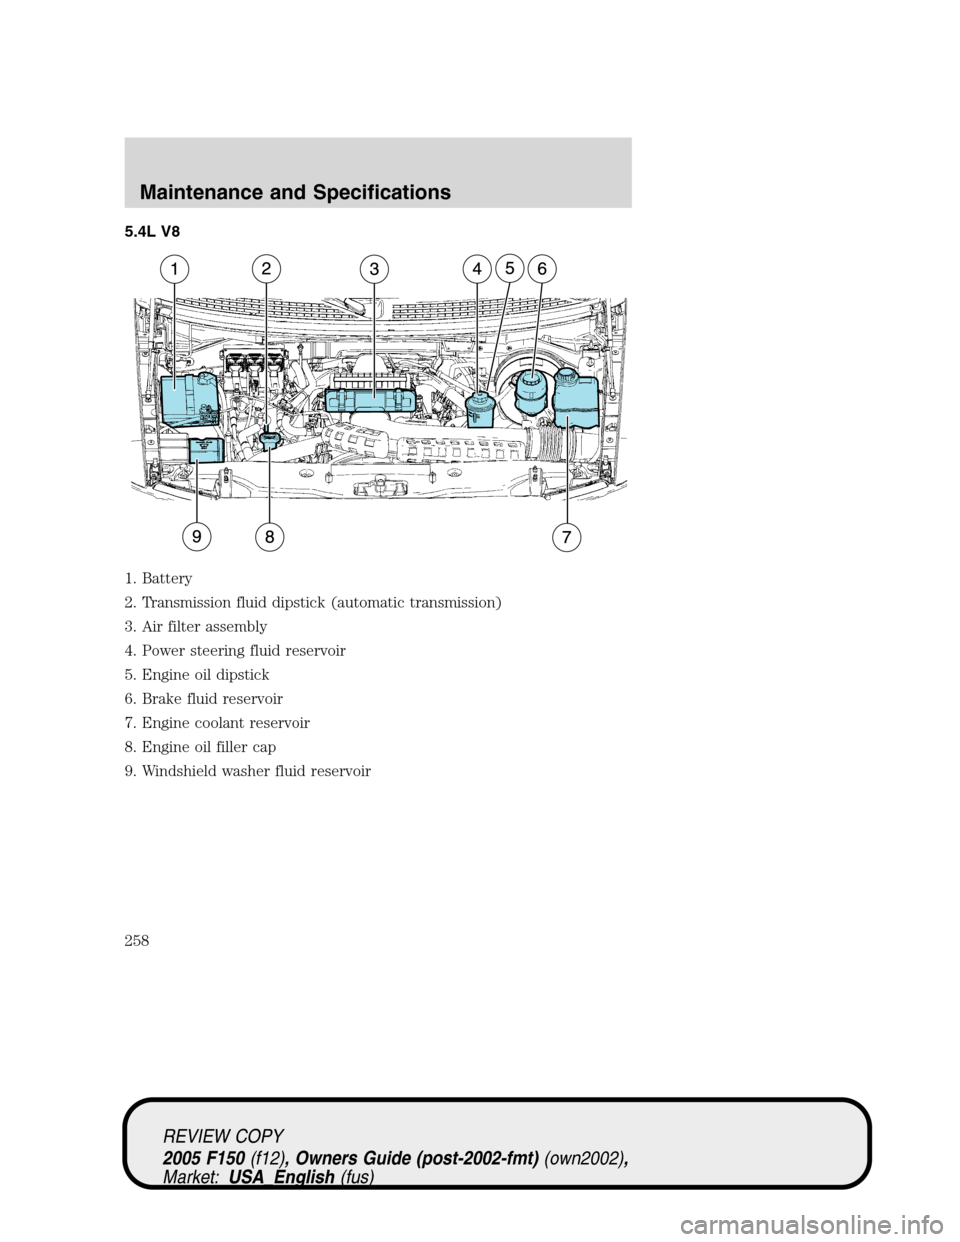 hight resolution of ford f150 2005 11 g owners manual page 258 5 4l v8 engine